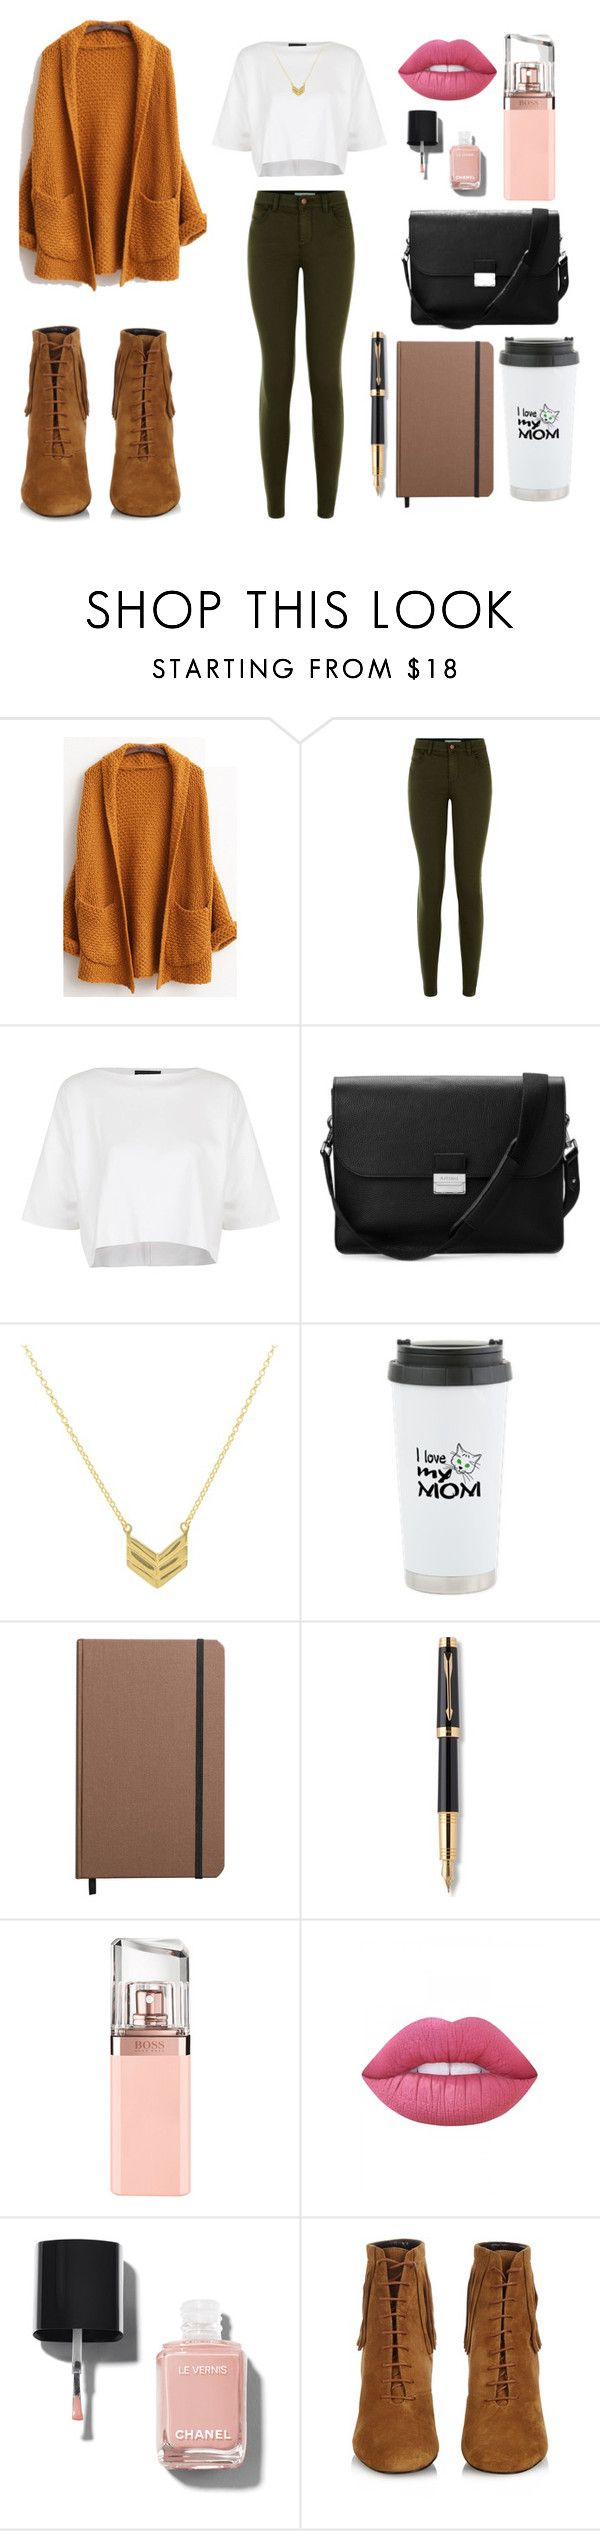 """""""vintage"""" by larrytale on Polyvore featuring мода, New Look, Topshop, Aspinal of London, Shinola, Parker, HUGO, Lime Crime, Chanel и Yves Saint Laurent"""